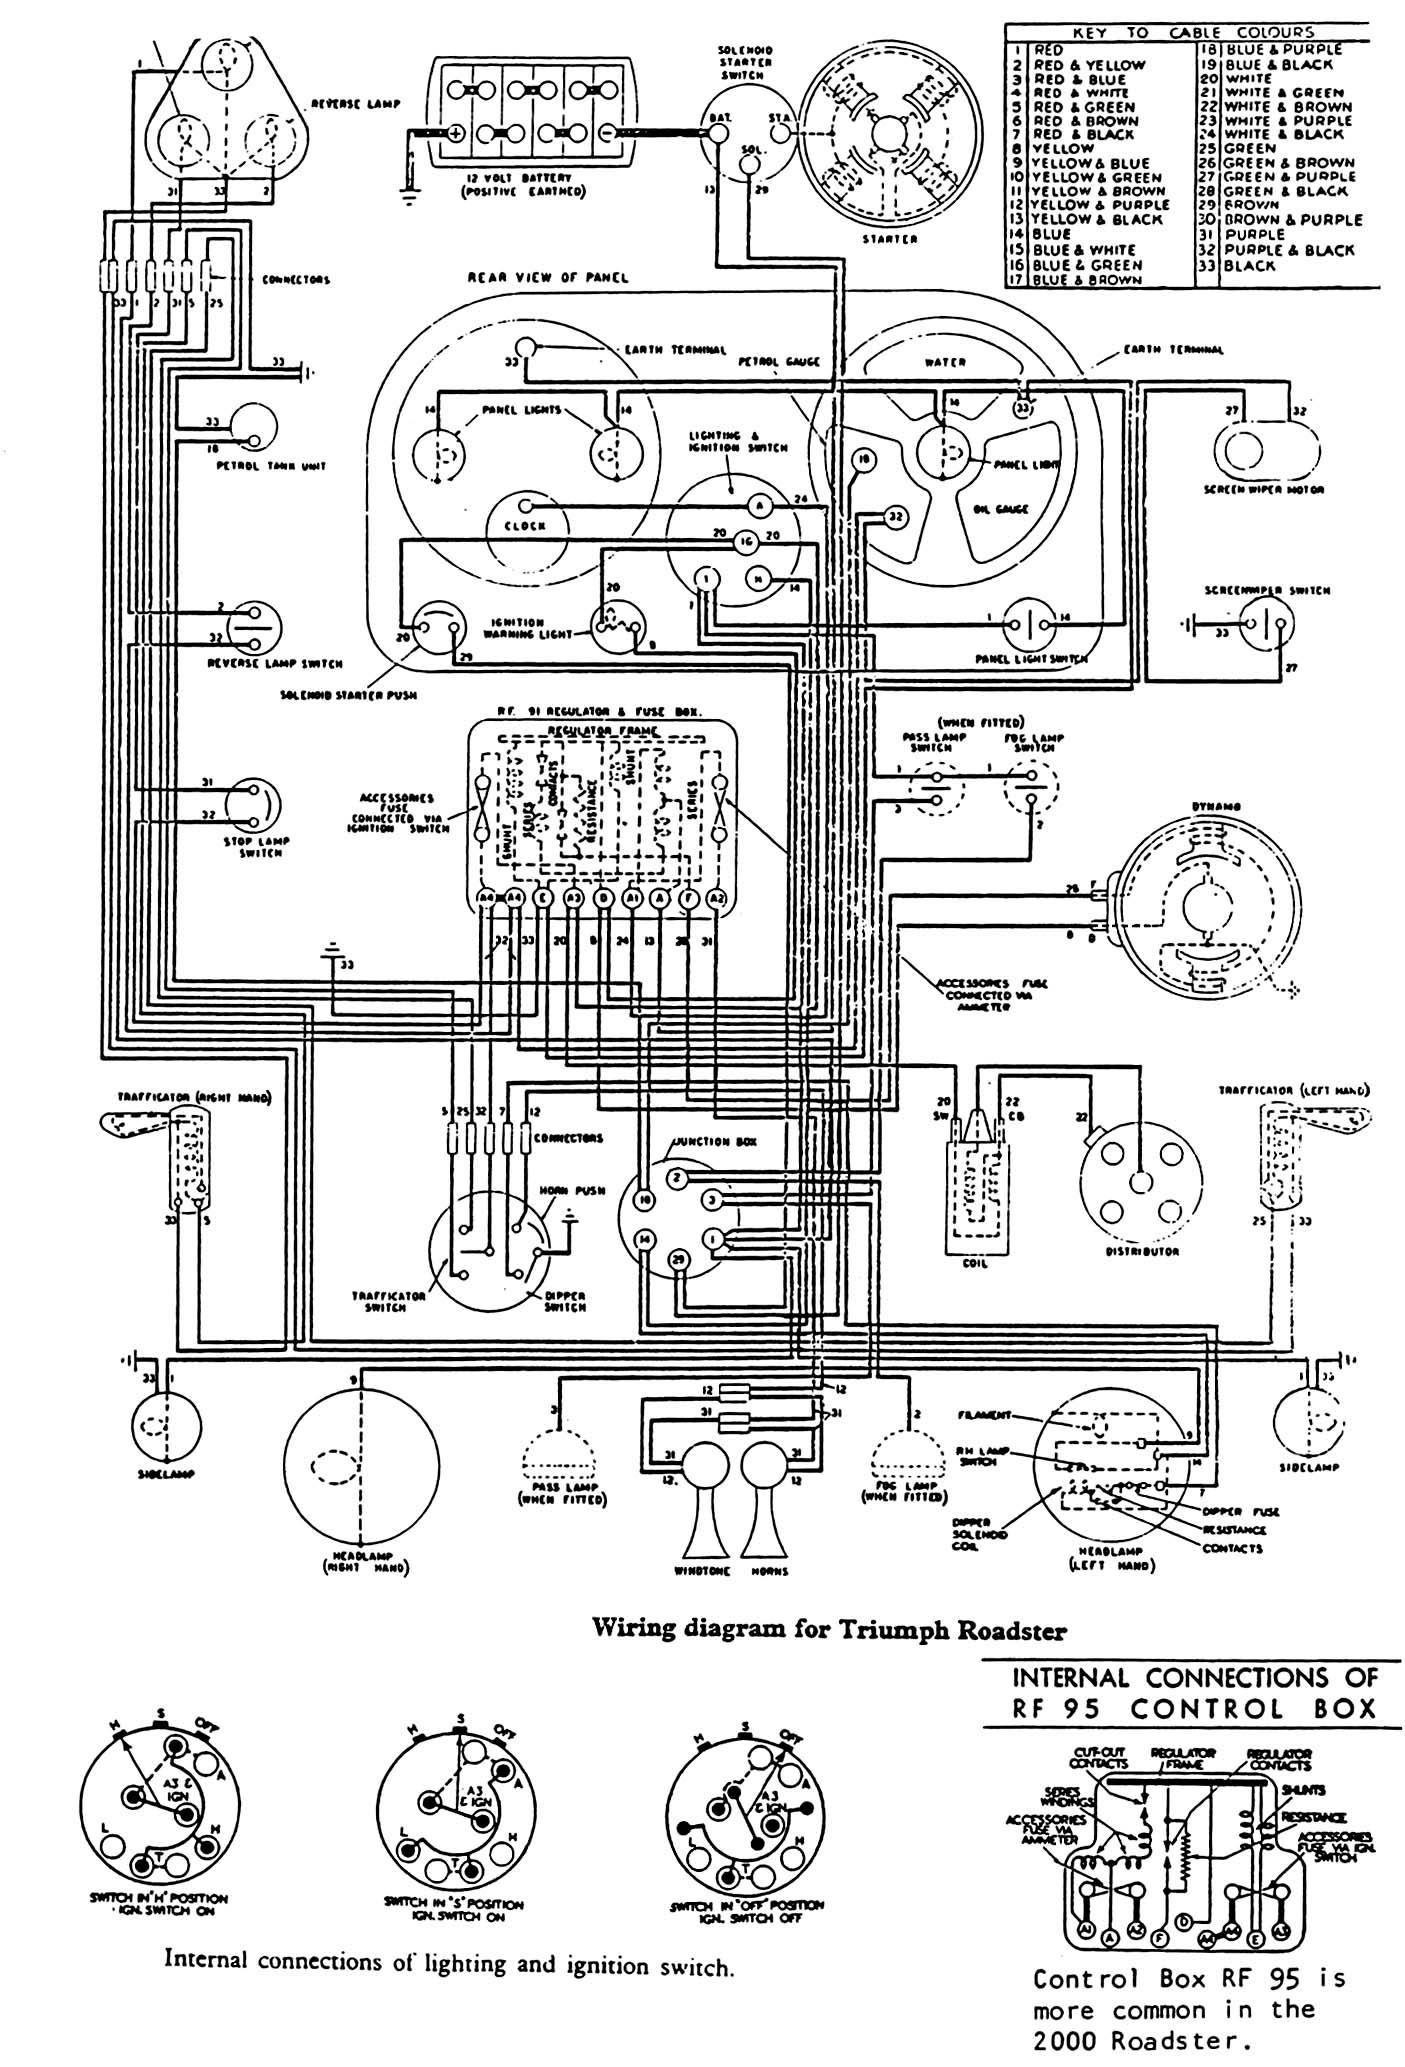 [DIAGRAM] Ground Fault Schematic Wiring Diagram FULL